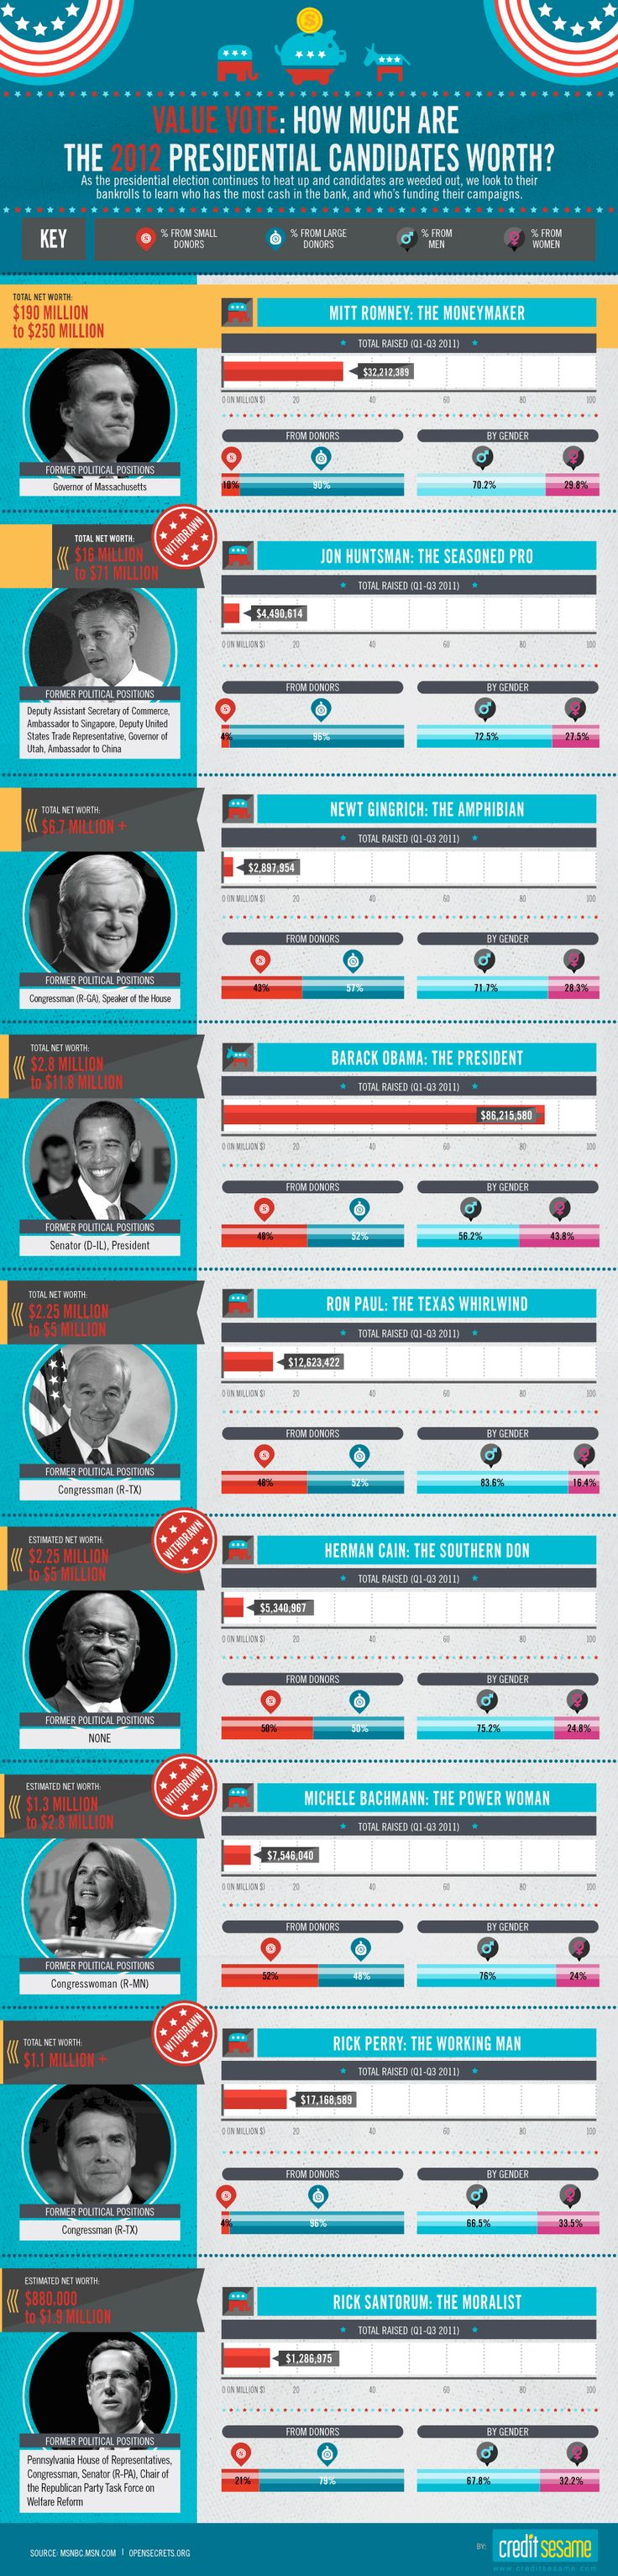 US presidential candidates net worth